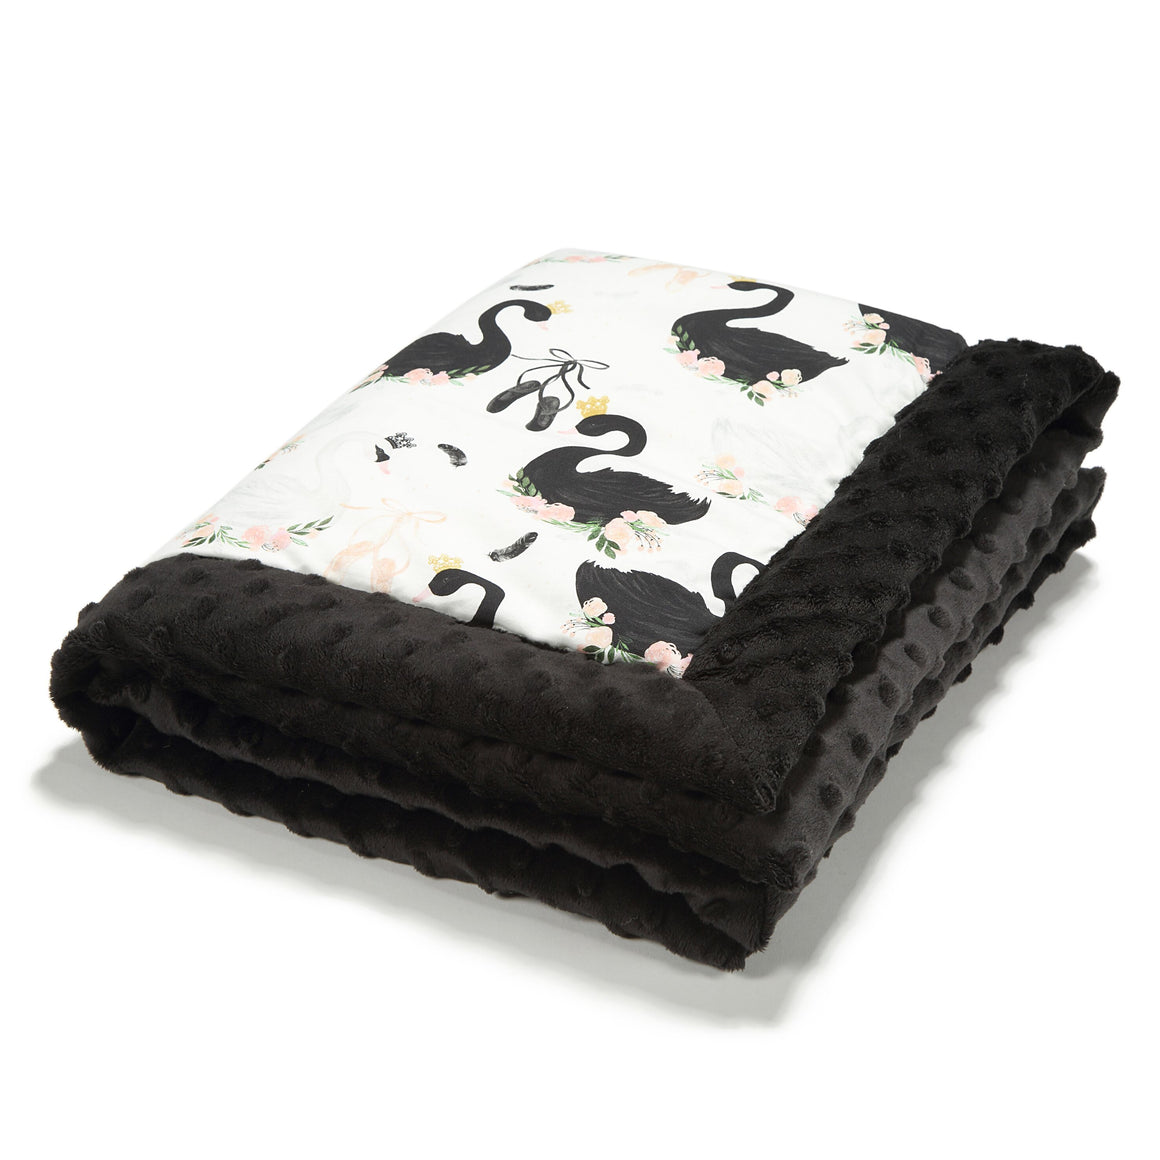 NEWBORN BLANKET peitto - Moonlight Swan | Black